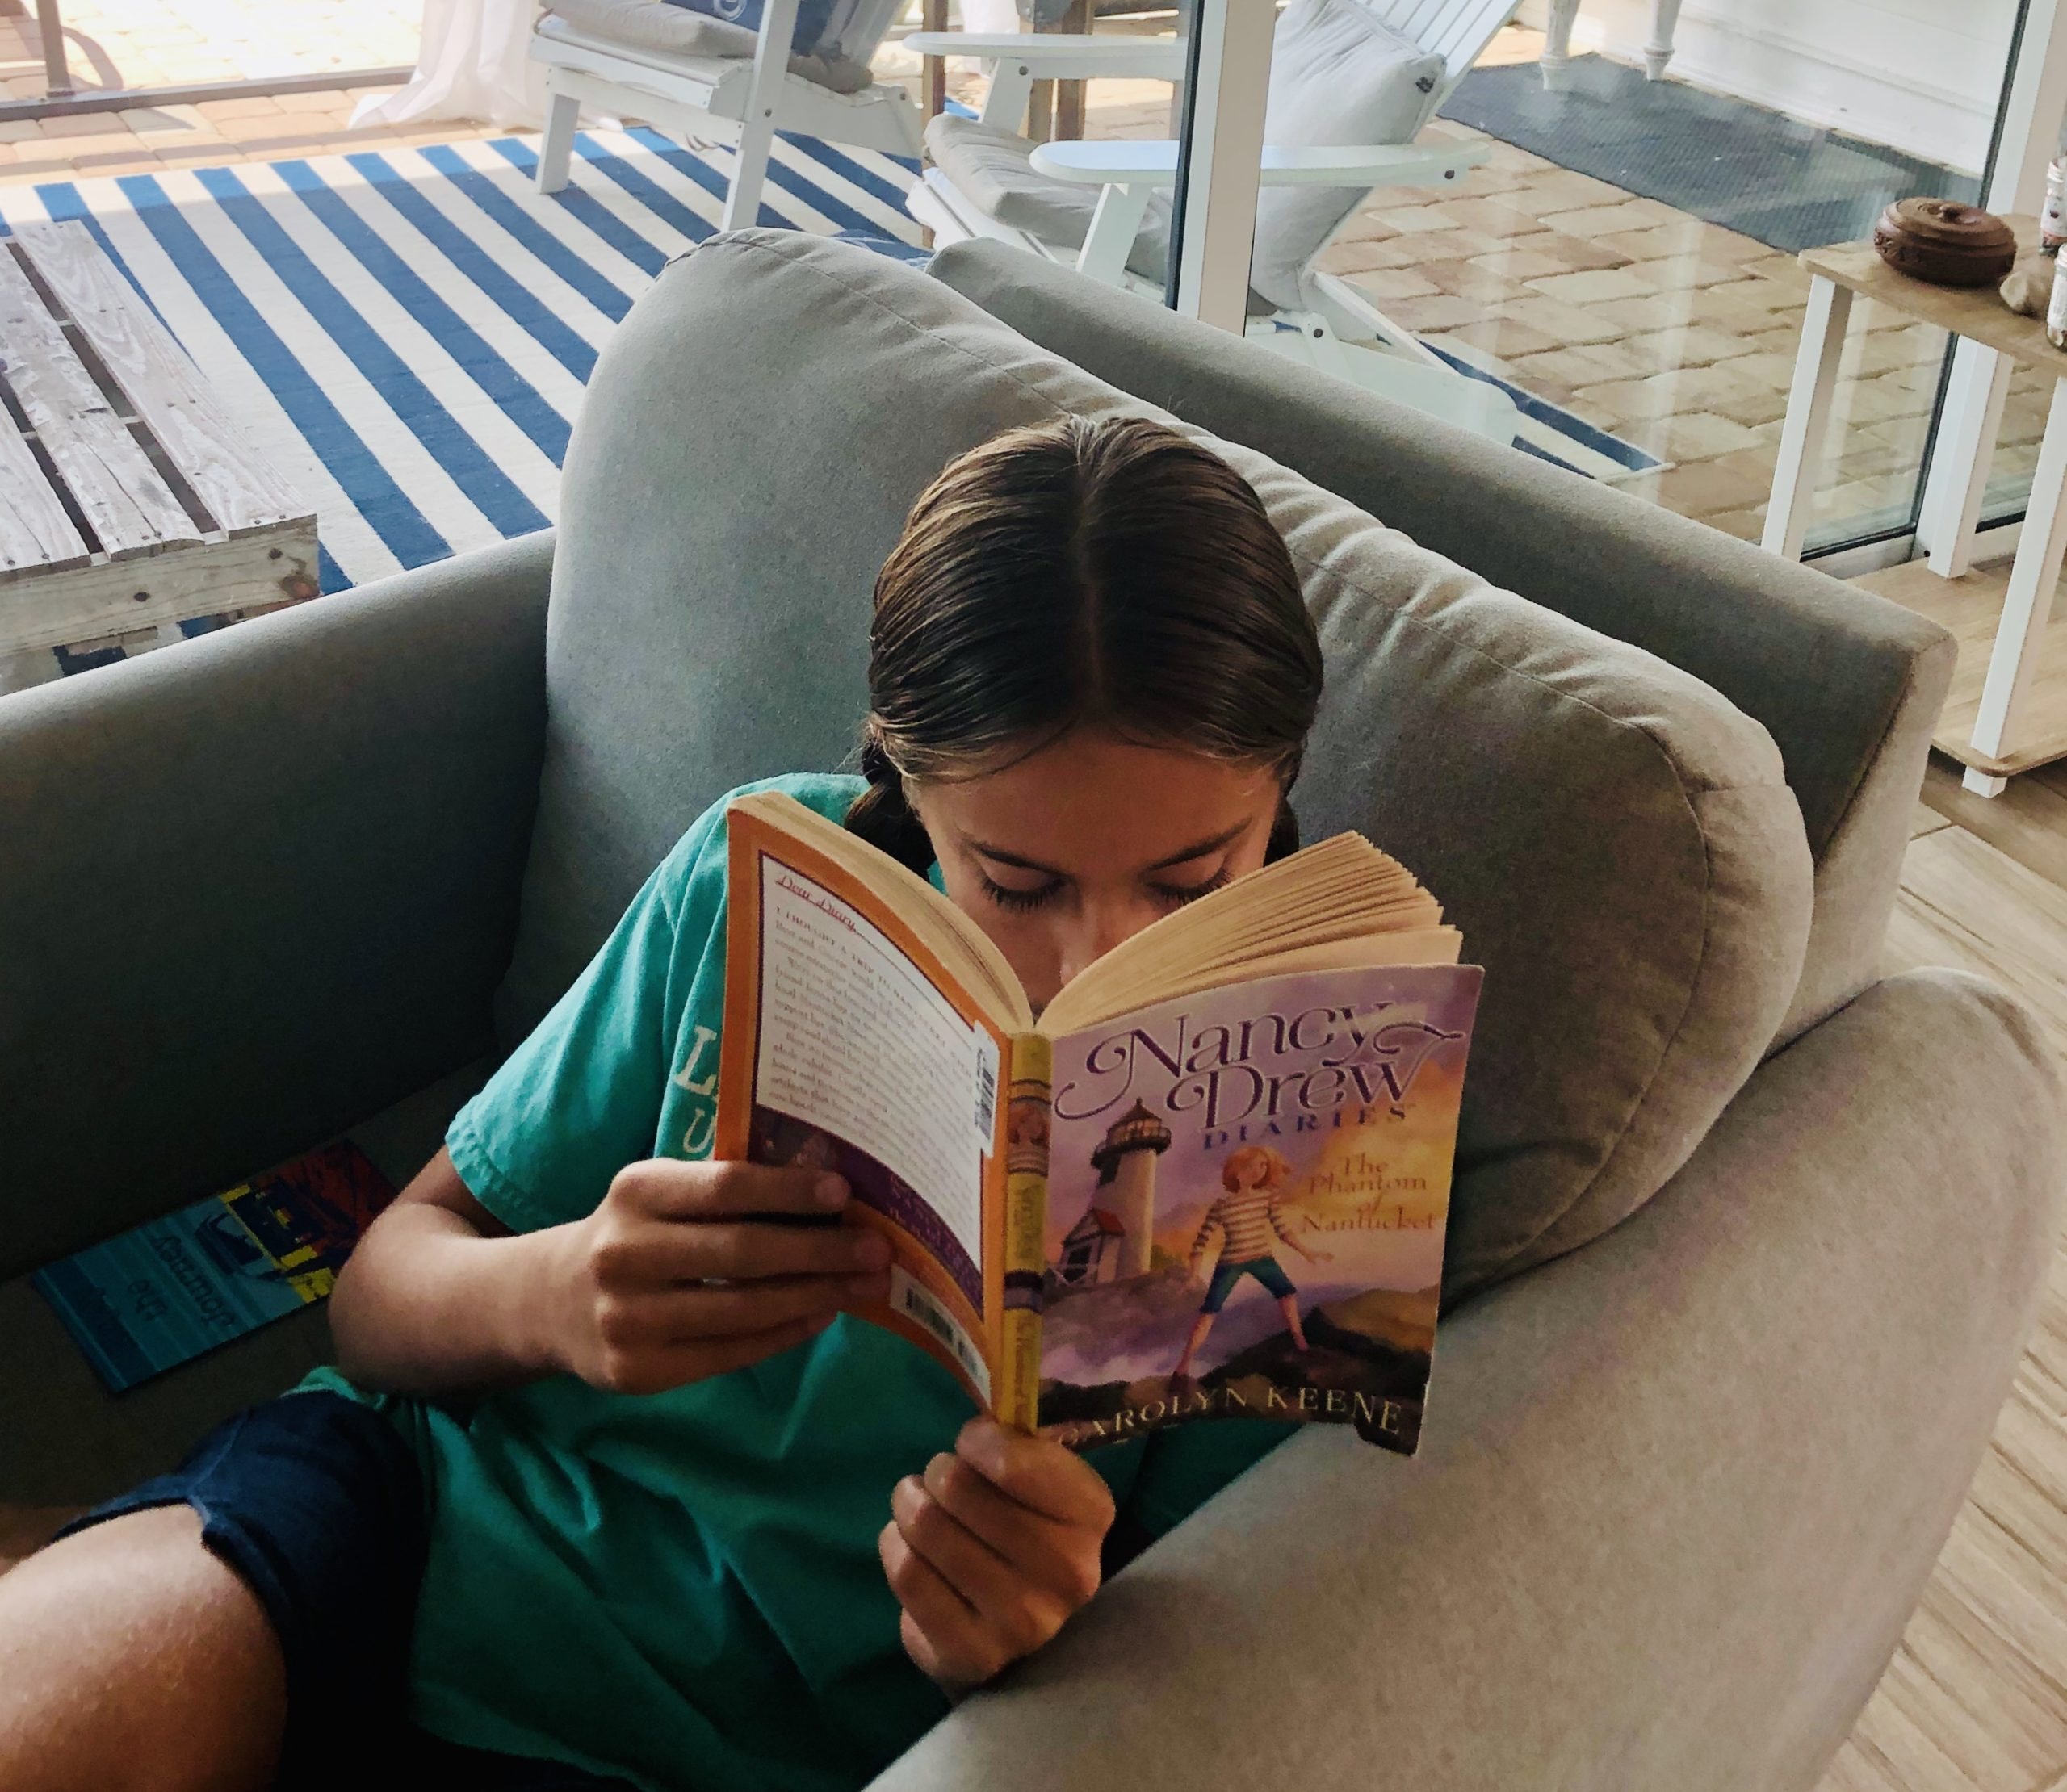 Kinley, 11 year old girl, reading Nancy Drew's Phantom of Nantucket. She's sitting in a chair with her head down.